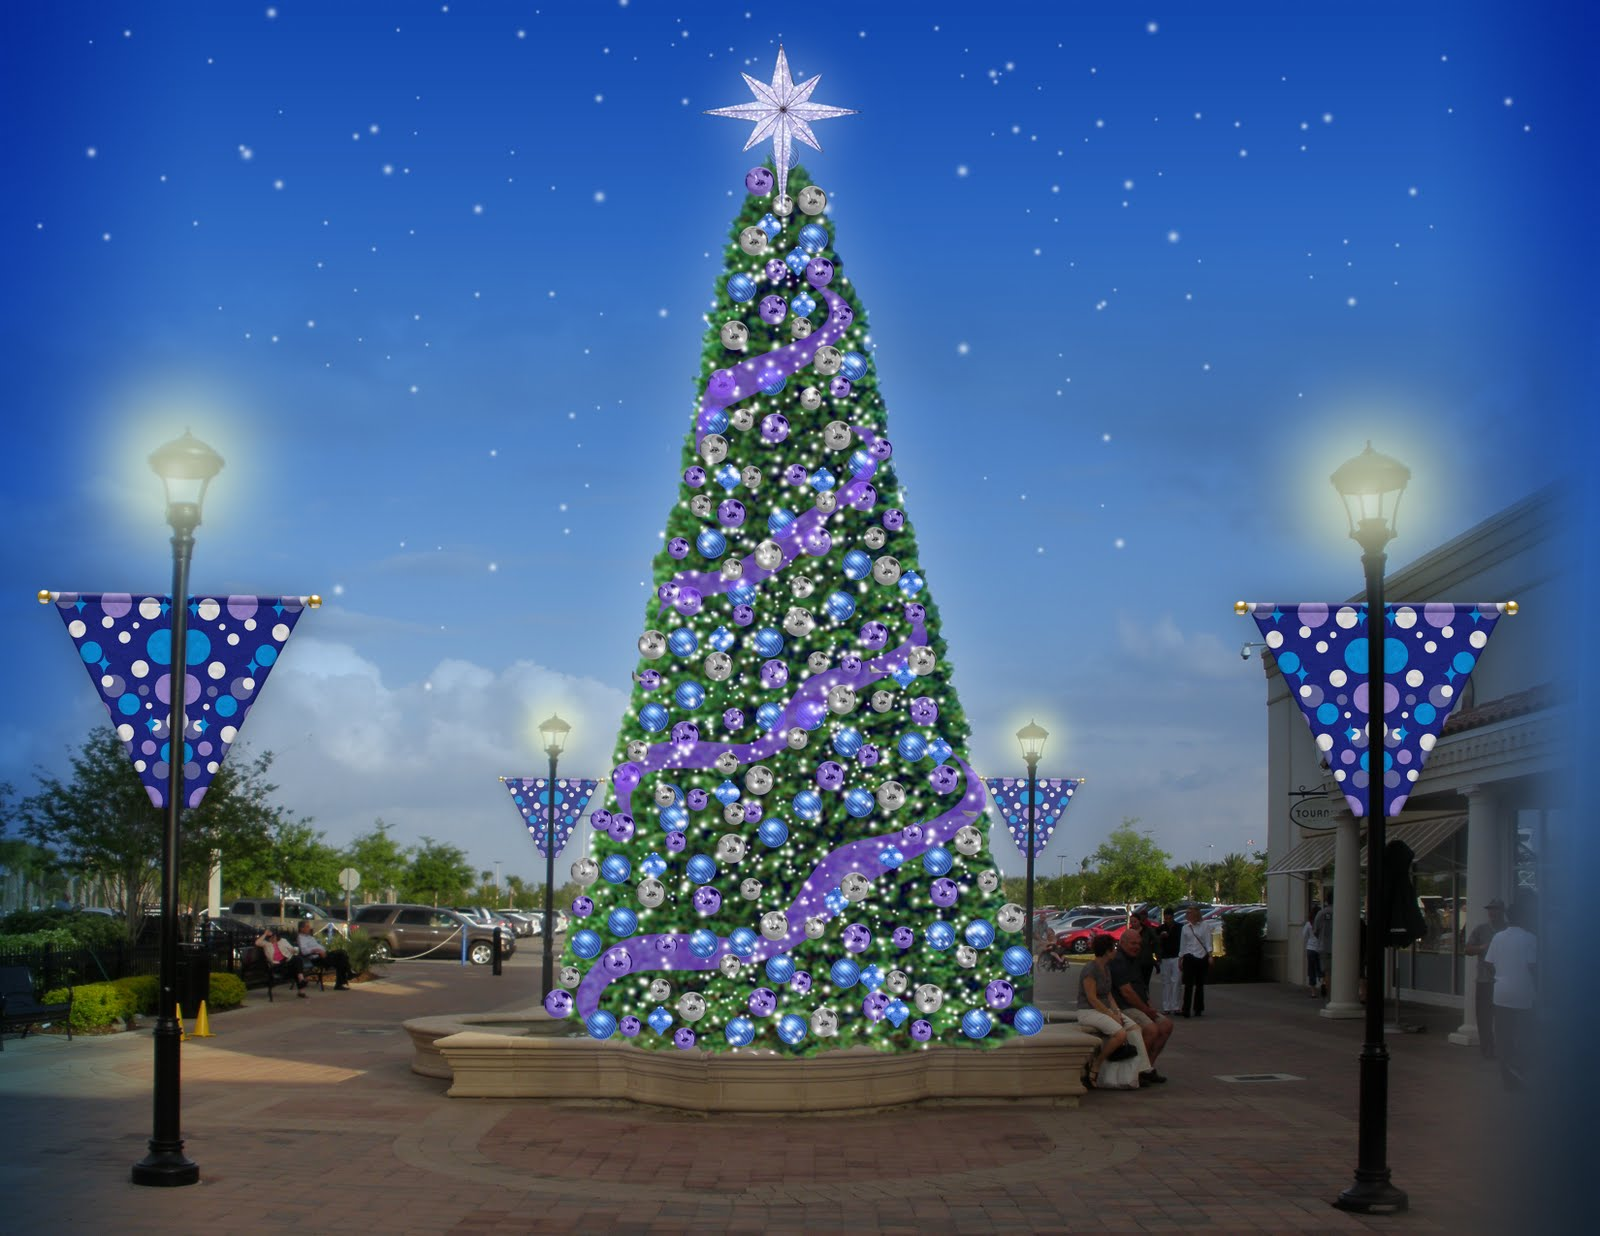 commercial img led christmas decorations help light decor display money displays and for make fundraise organization